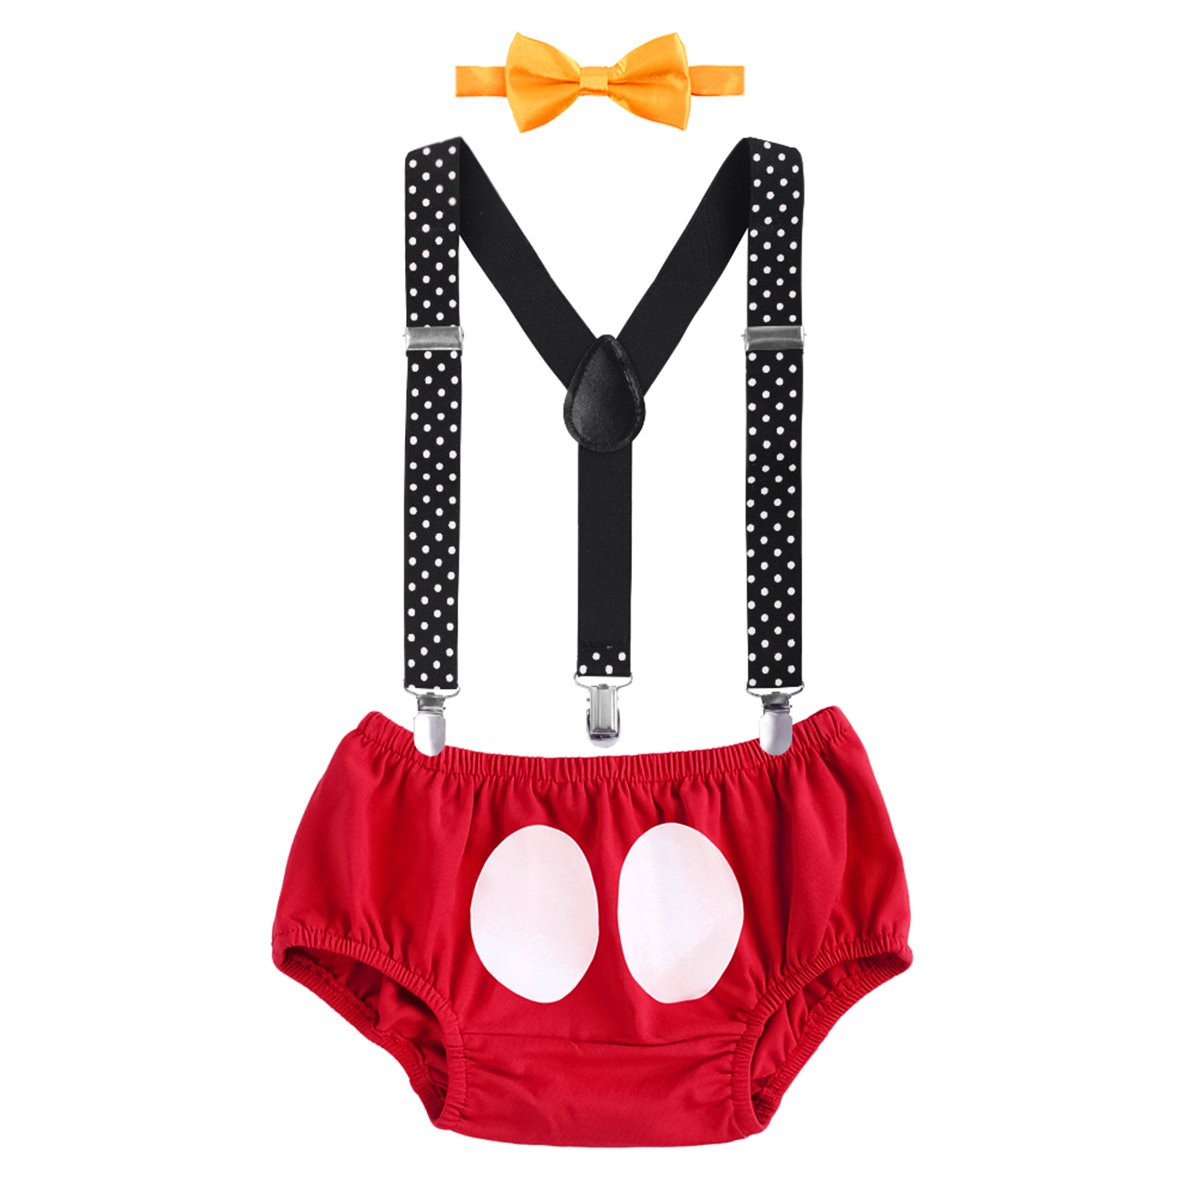 ae8c5756dc31 Mouse Infant Boy 1st Birthday Briefs Shorts Pants Suspender Photography  Props Photo Shoot Costume ▷◁ Y-back suspenders designed with 3 ...